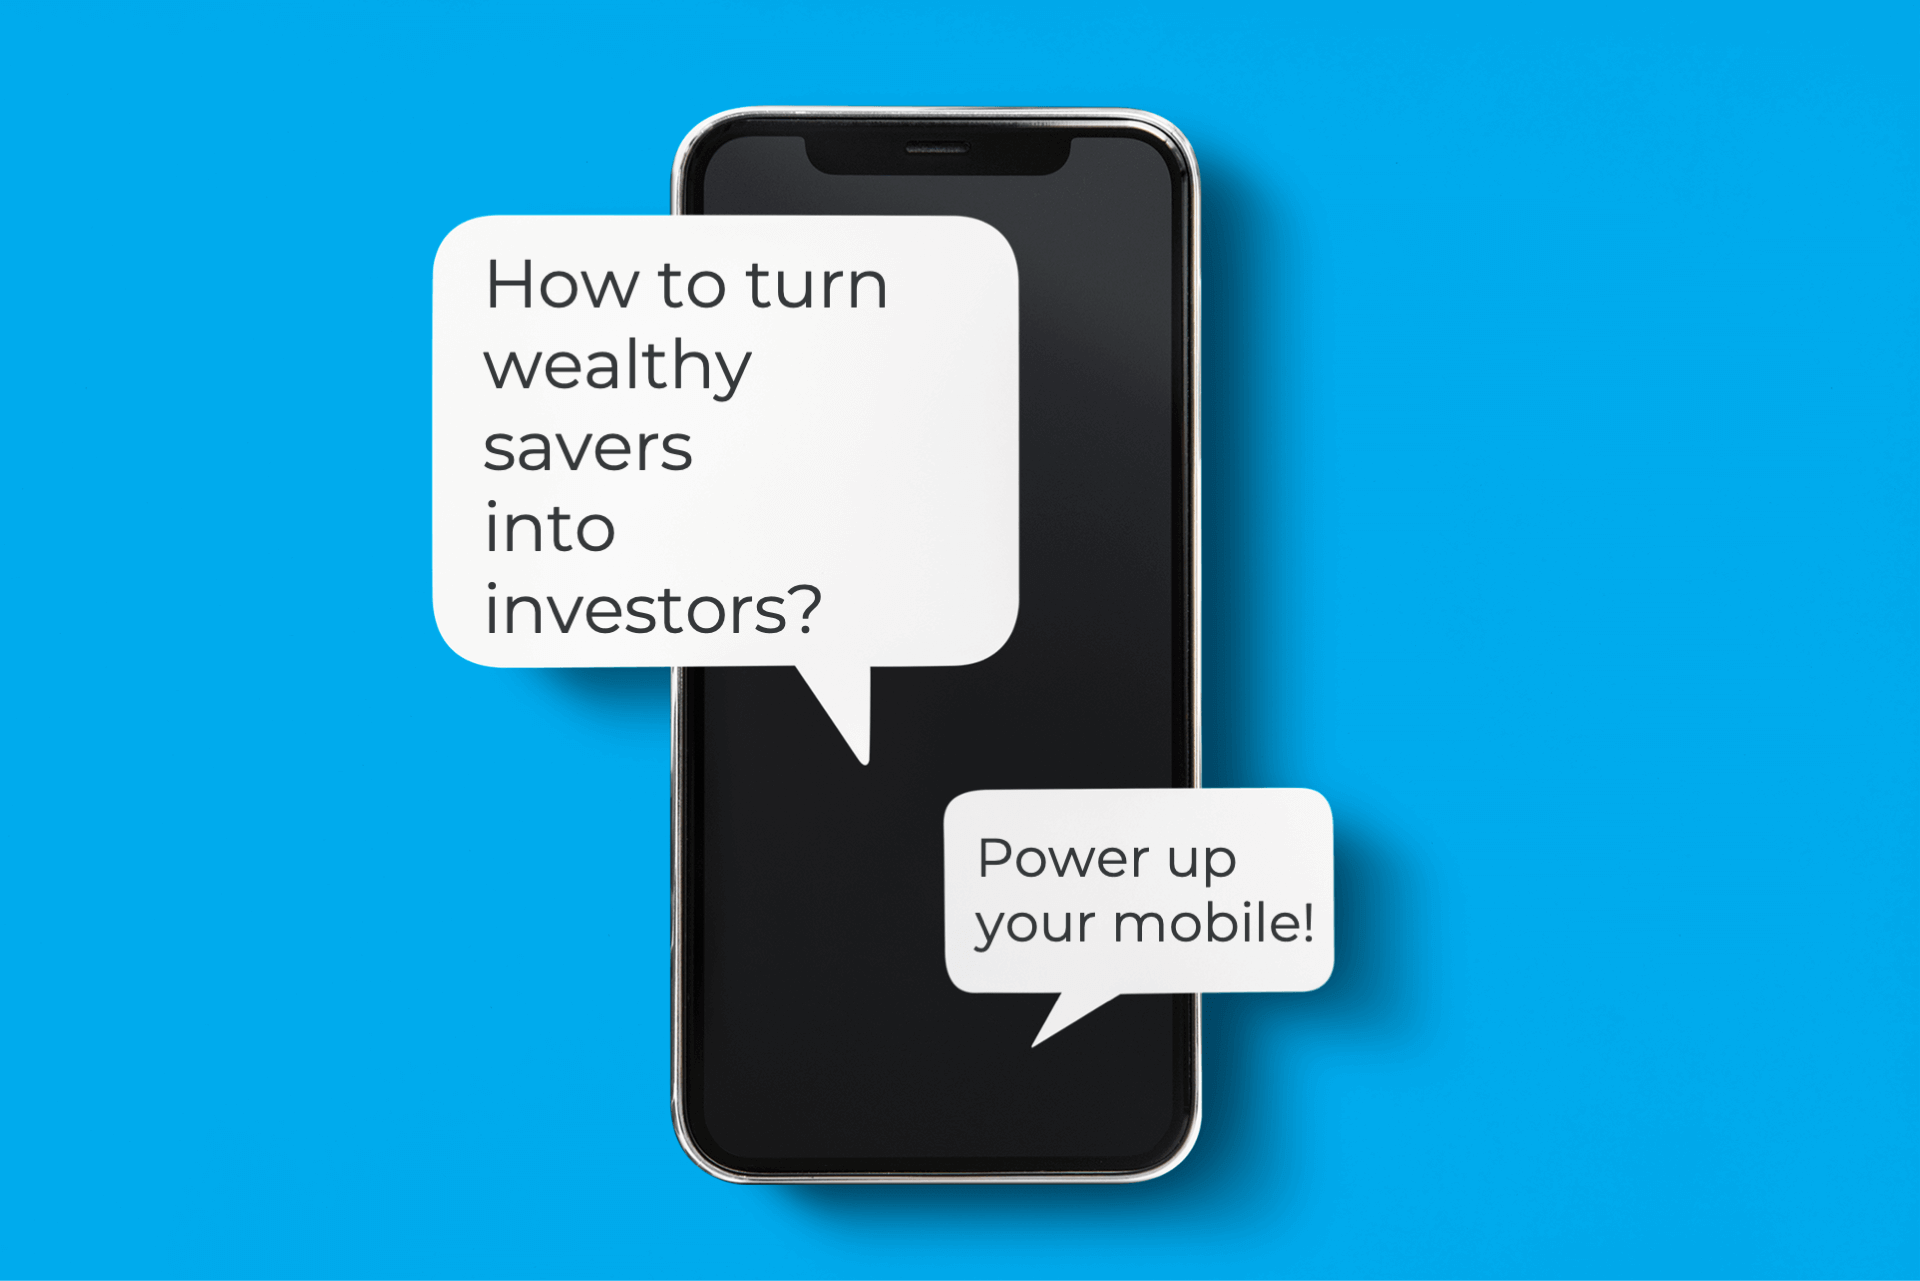 The Conversion Engine comes to the rescue of banks in their attempt to convert savings into investments